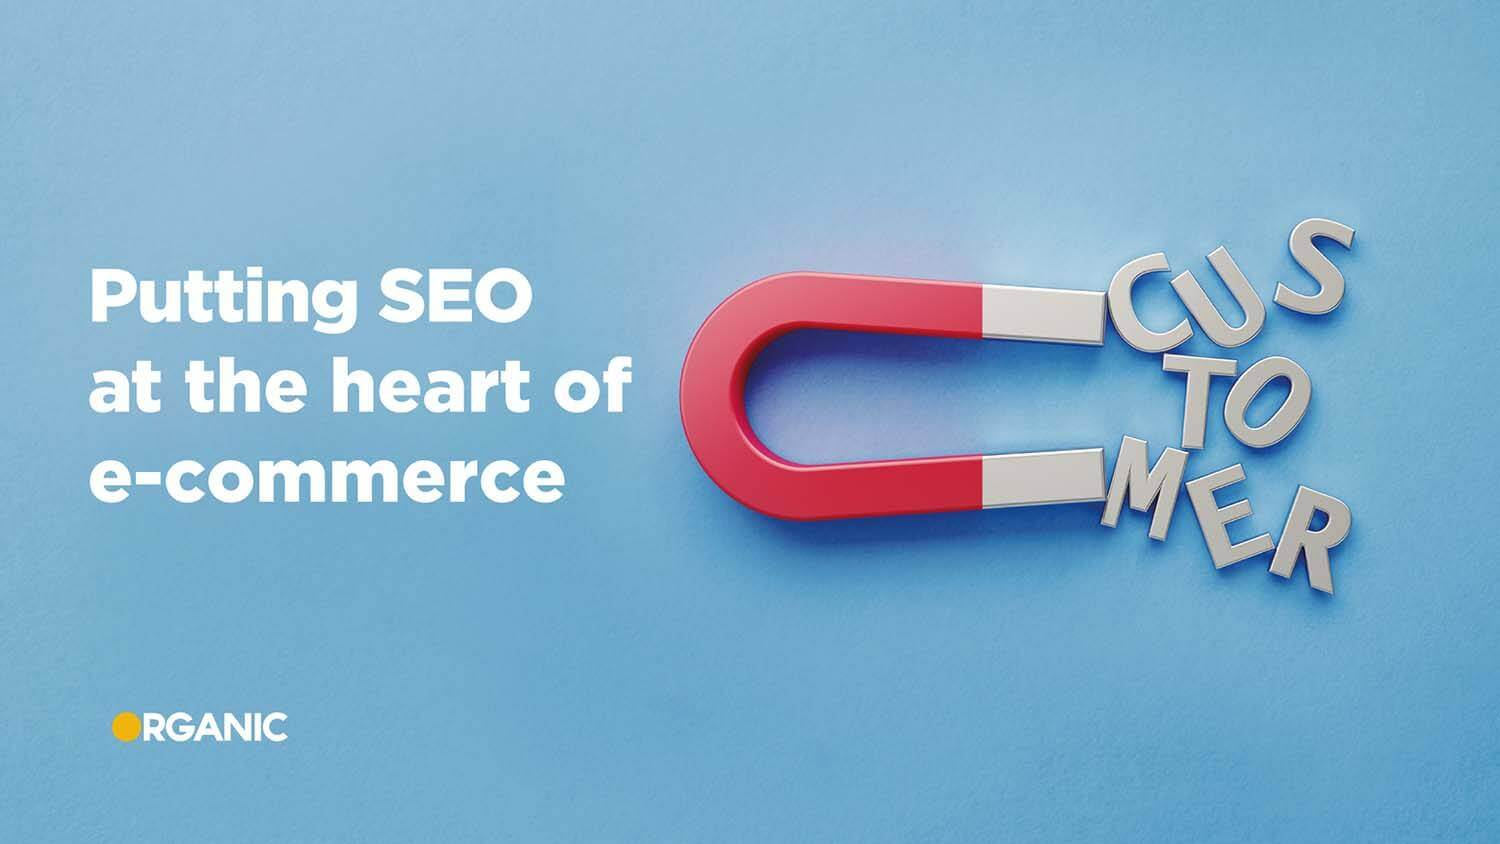 Putting SEO at the heart of eCommerce